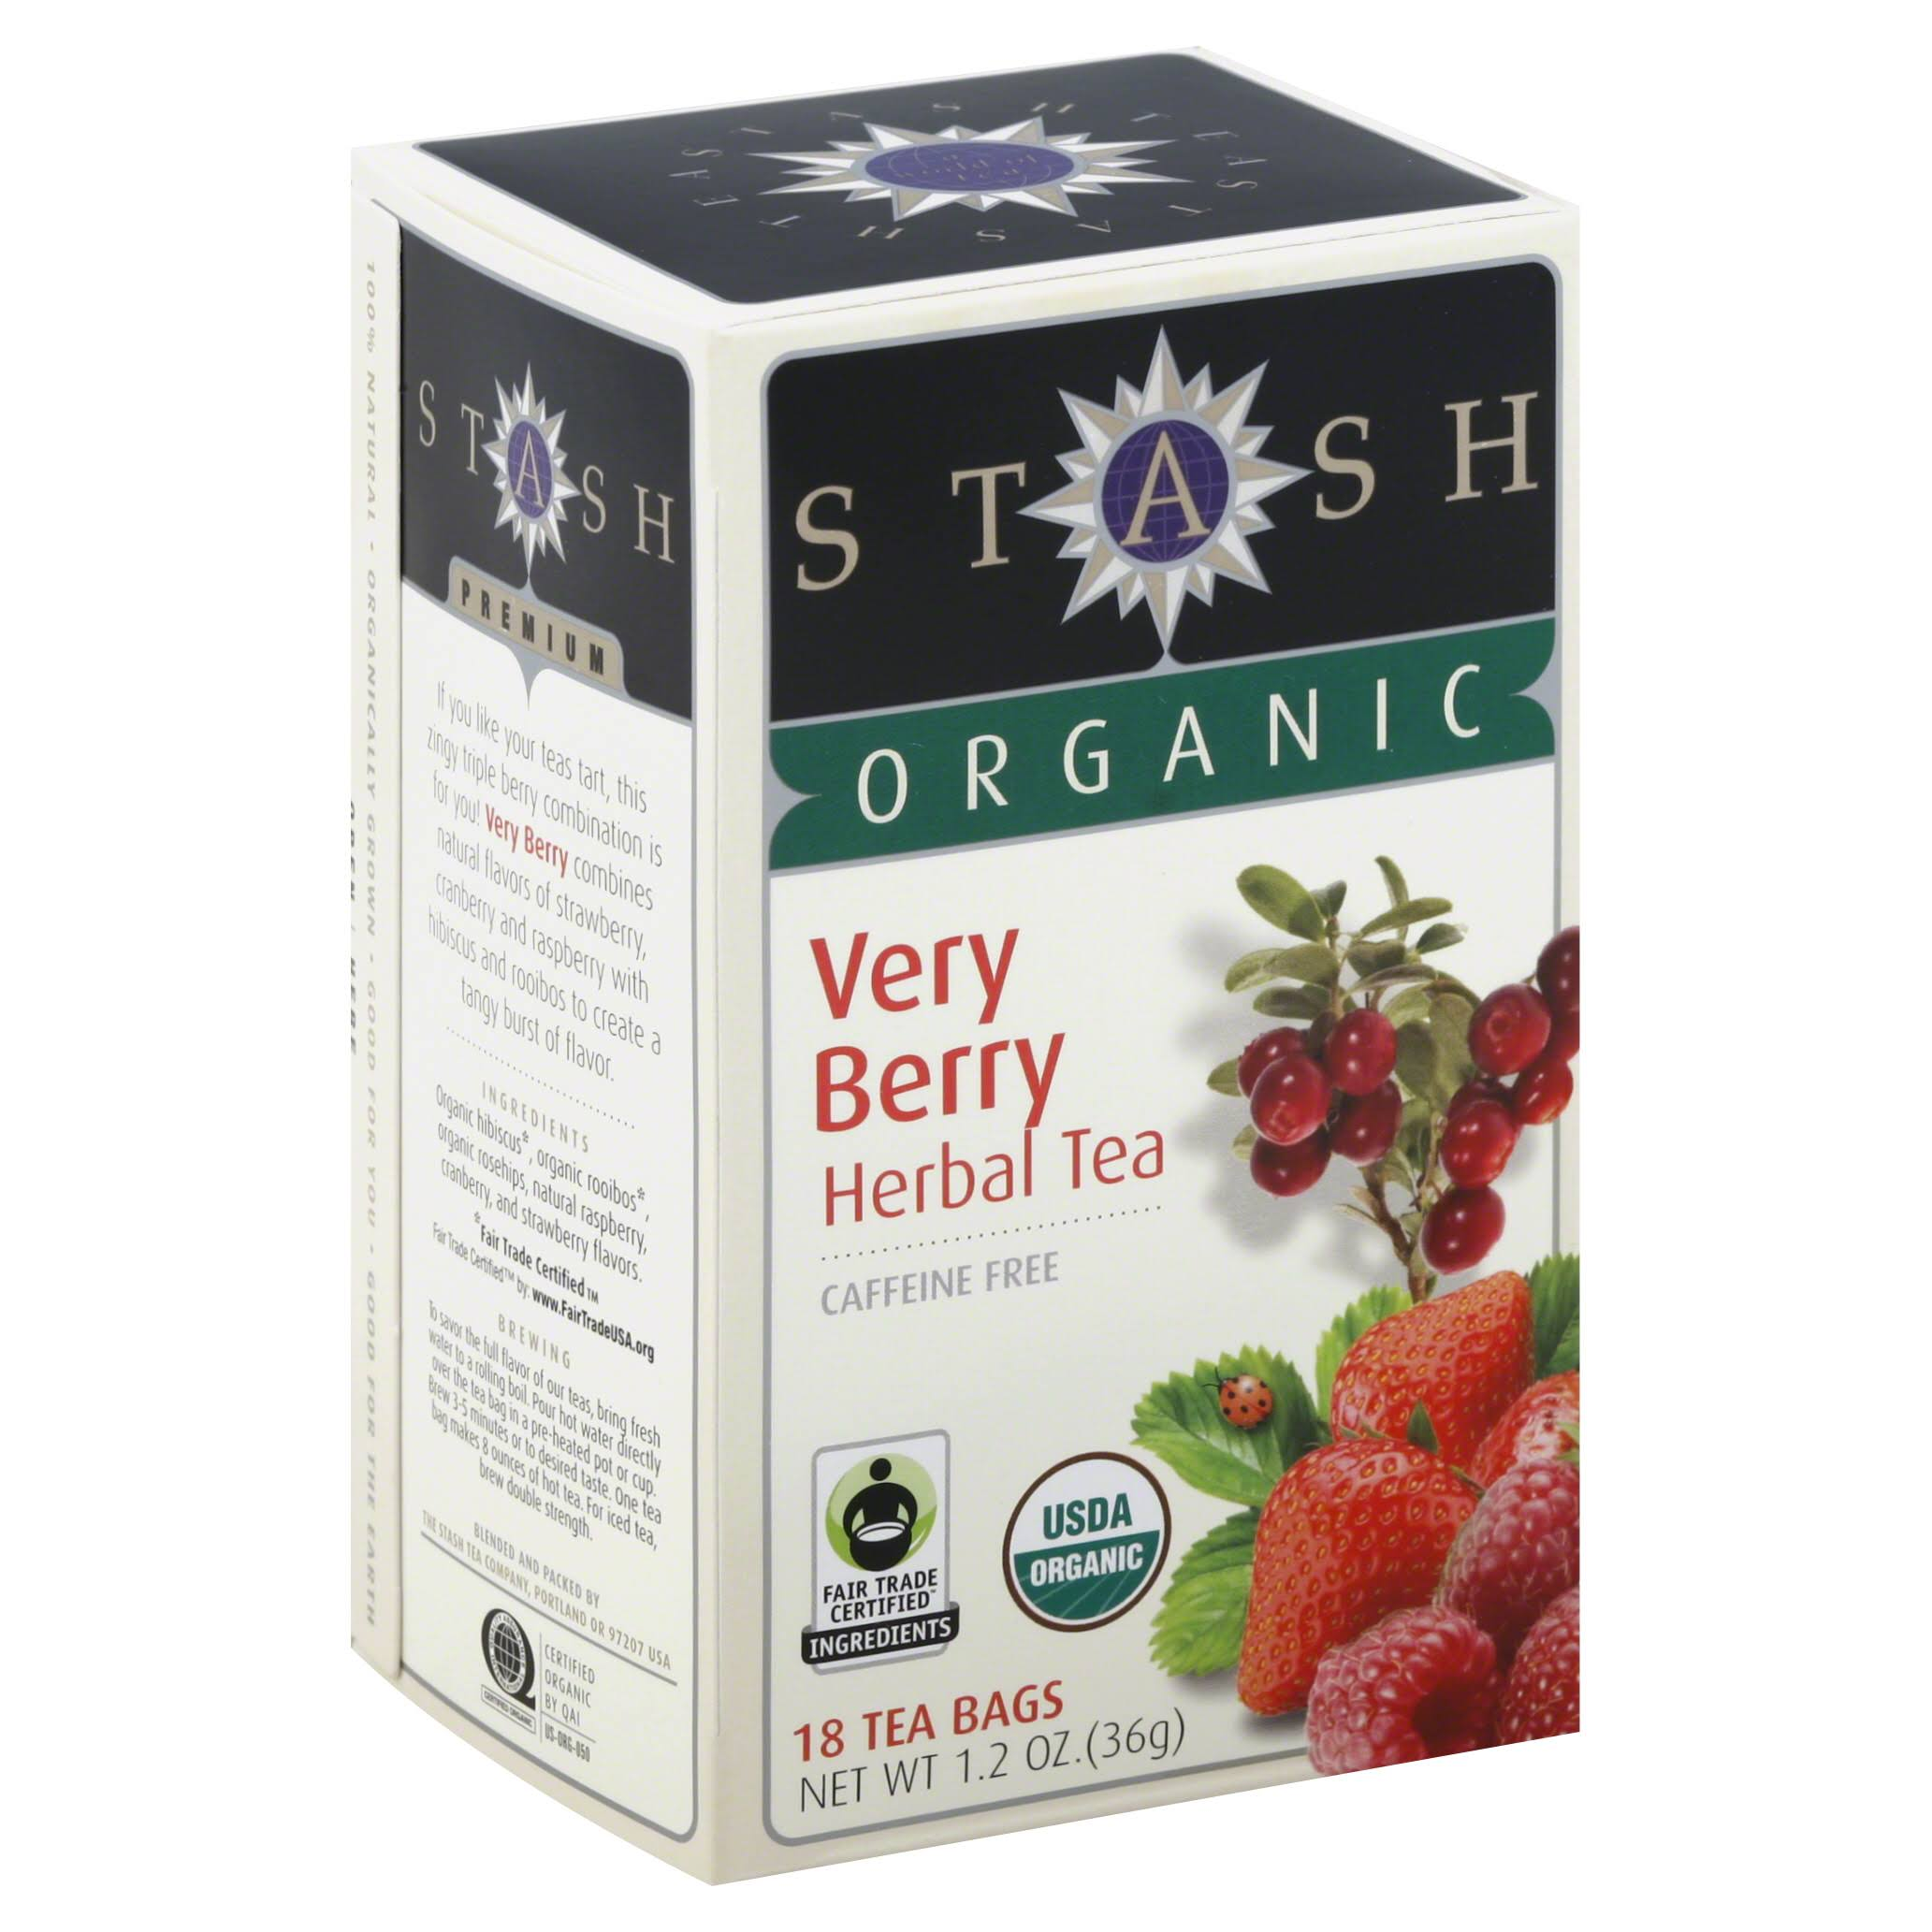 Stash Tea Company Organic Very Berry Herbal Tea - 18 Tea Bags, 36g